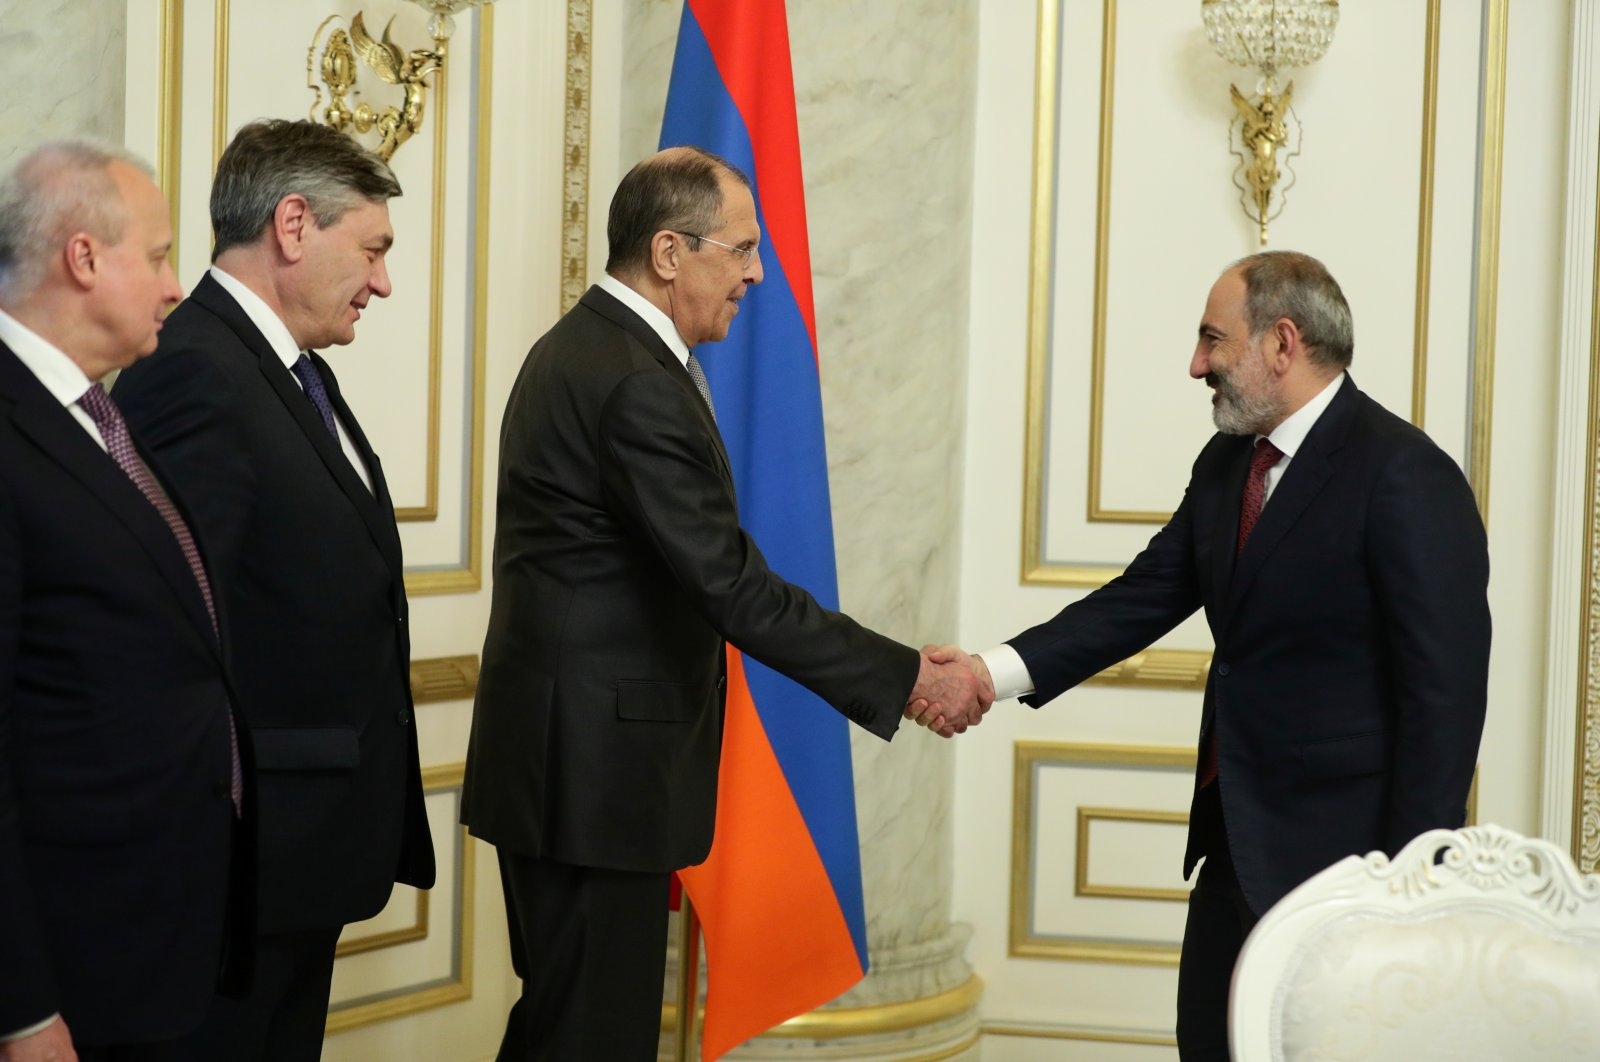 Russia's Foreign Minister Sergey Lavrov shakes hands with Armenia's acting Prime Minister Nikol Pashinian during a meeting in Yerevan, Armenia, May 6, 2021. (Russian Foreign Ministry handout via Reuters)